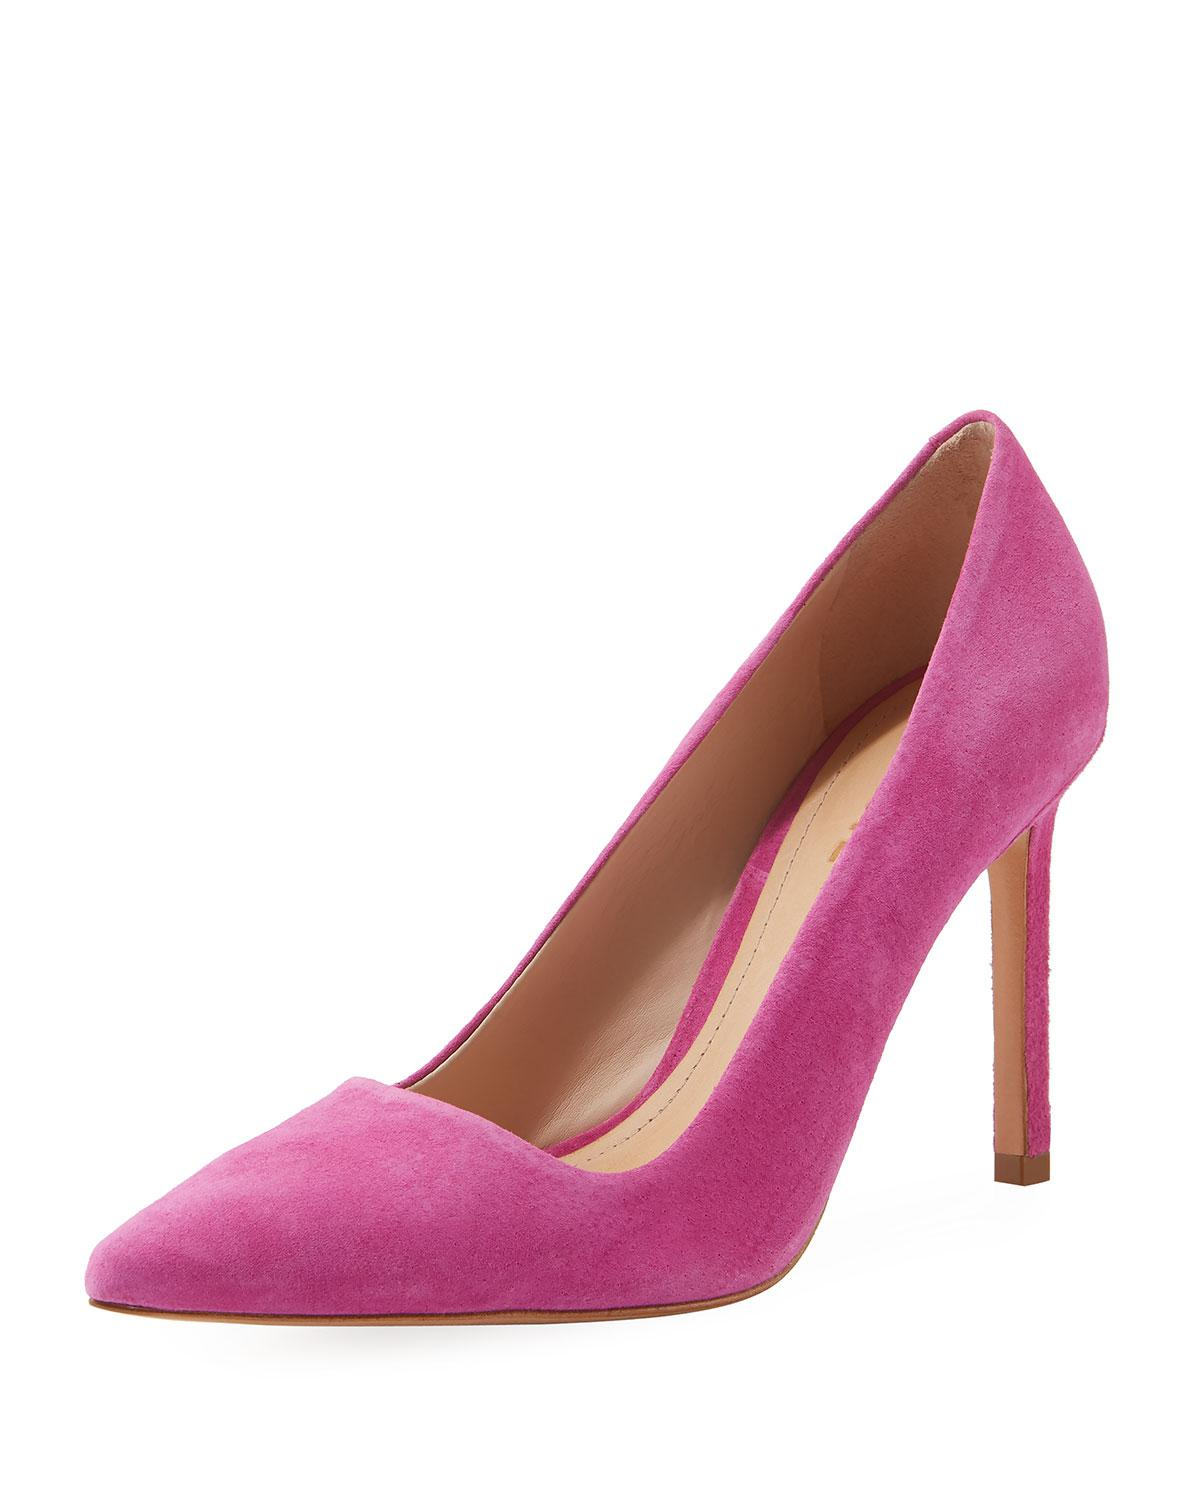 Schutz Pink Suede Leather Pumps